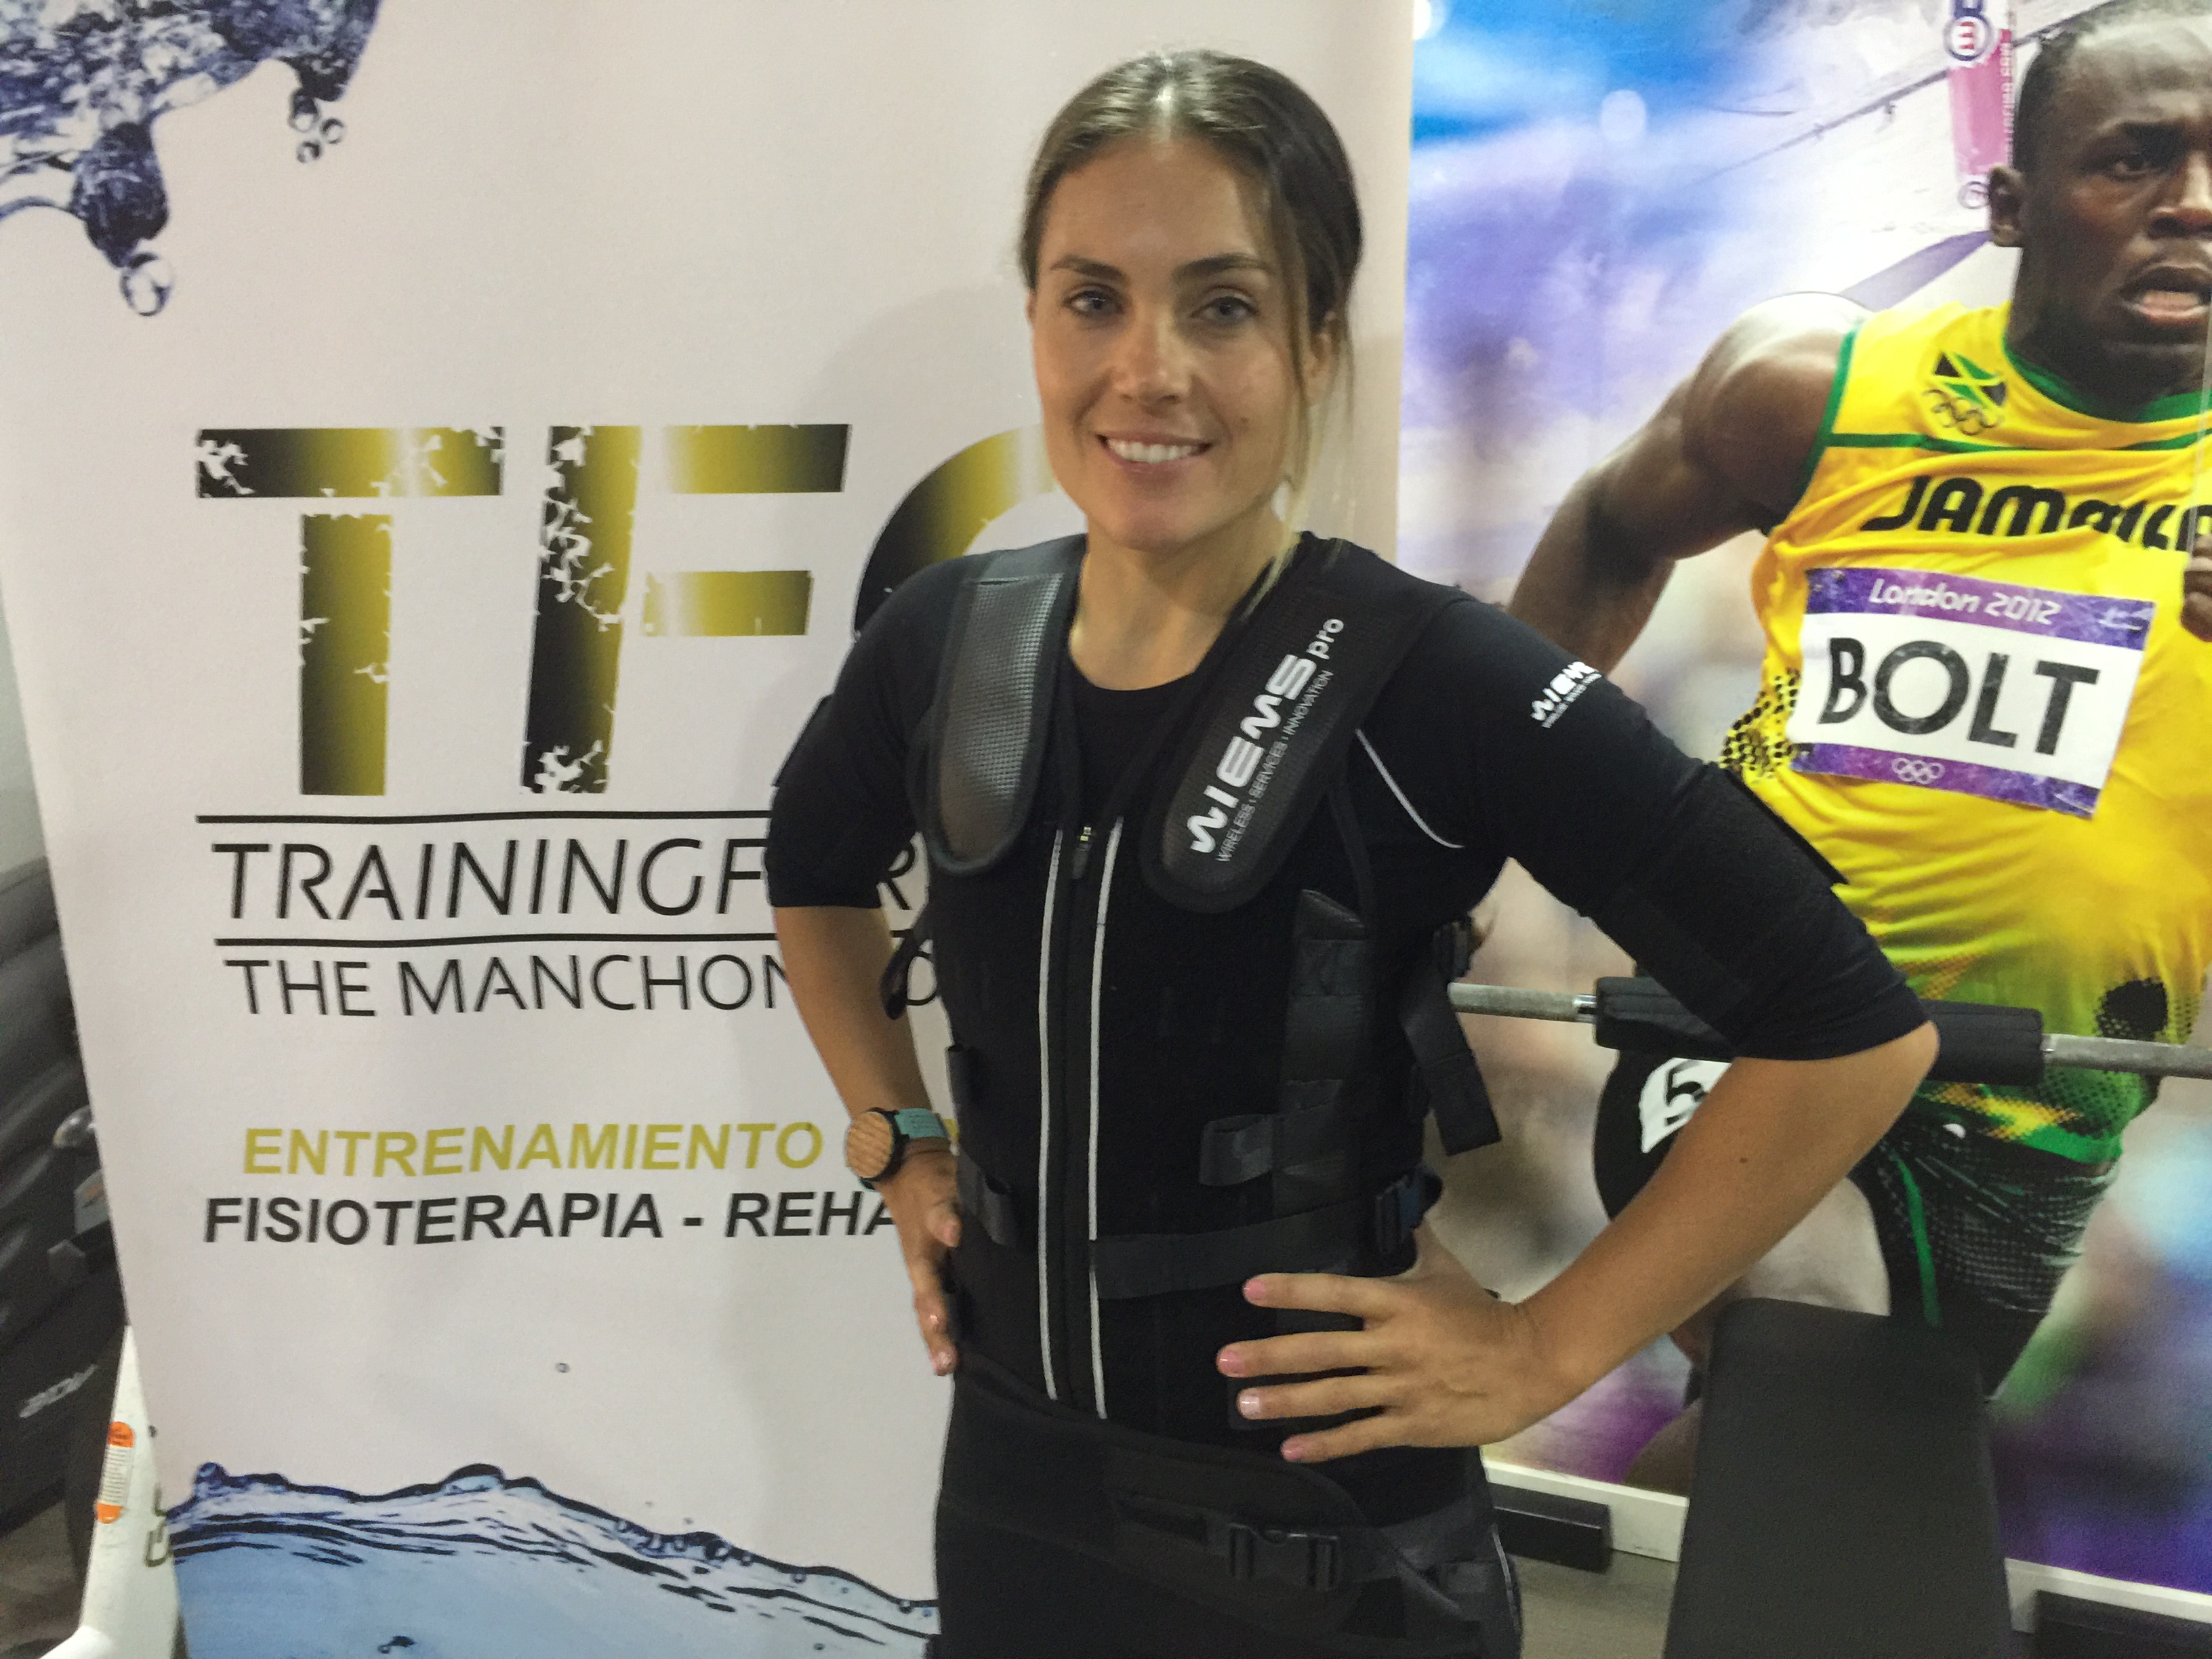 Blanca Manchón competes for her passport in Tokyo 2020